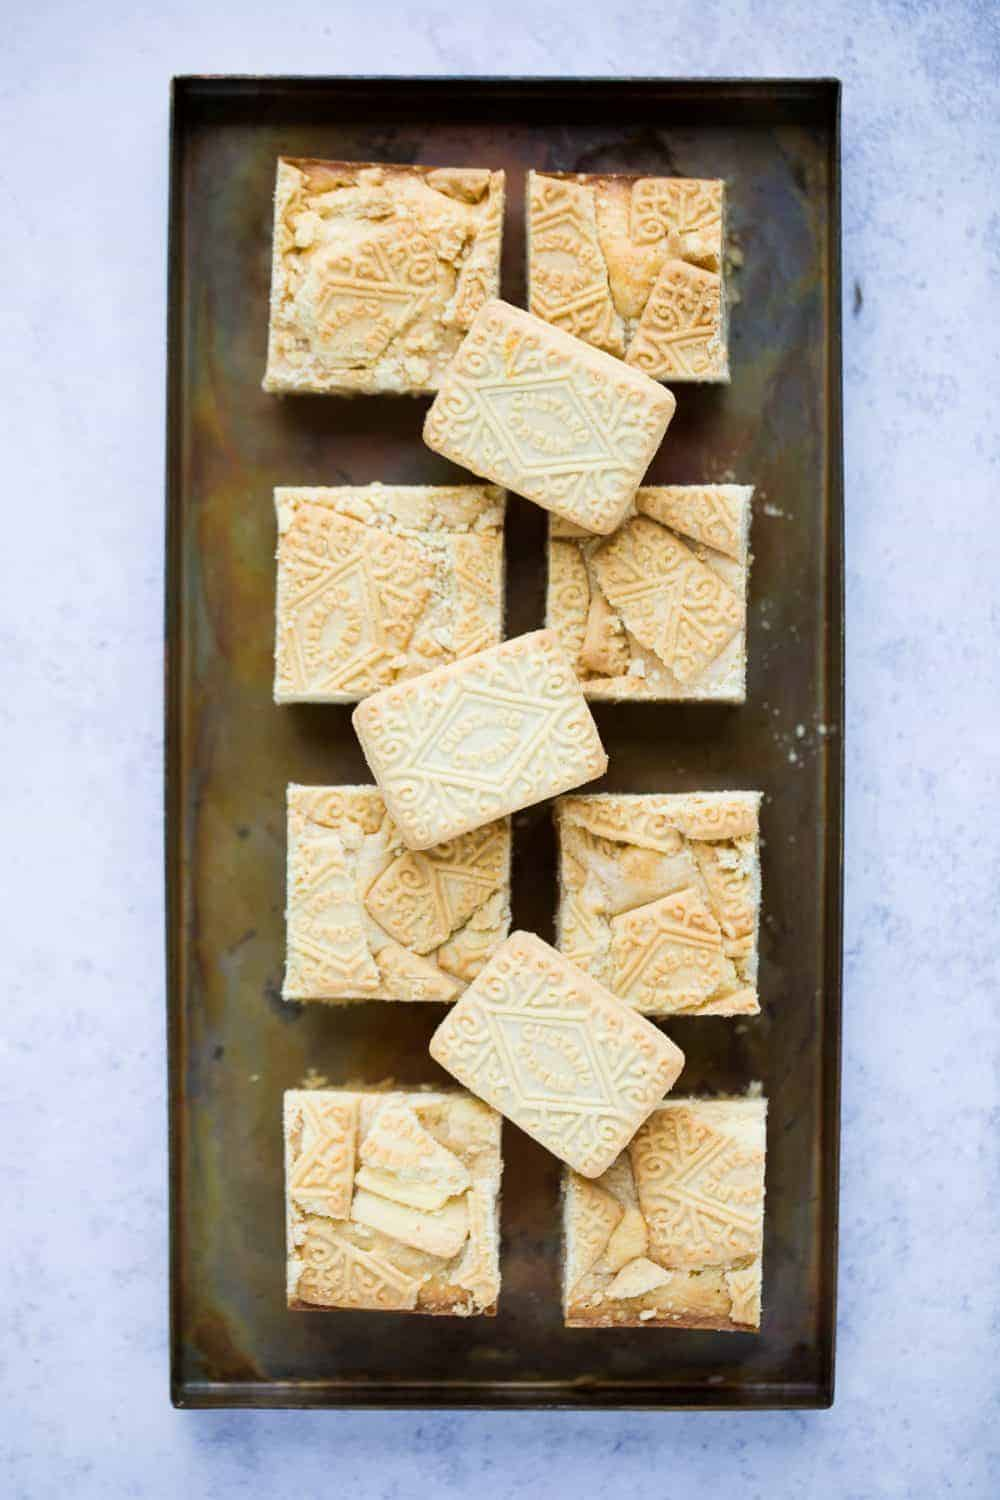 A dark metal tray with square blondies on it.